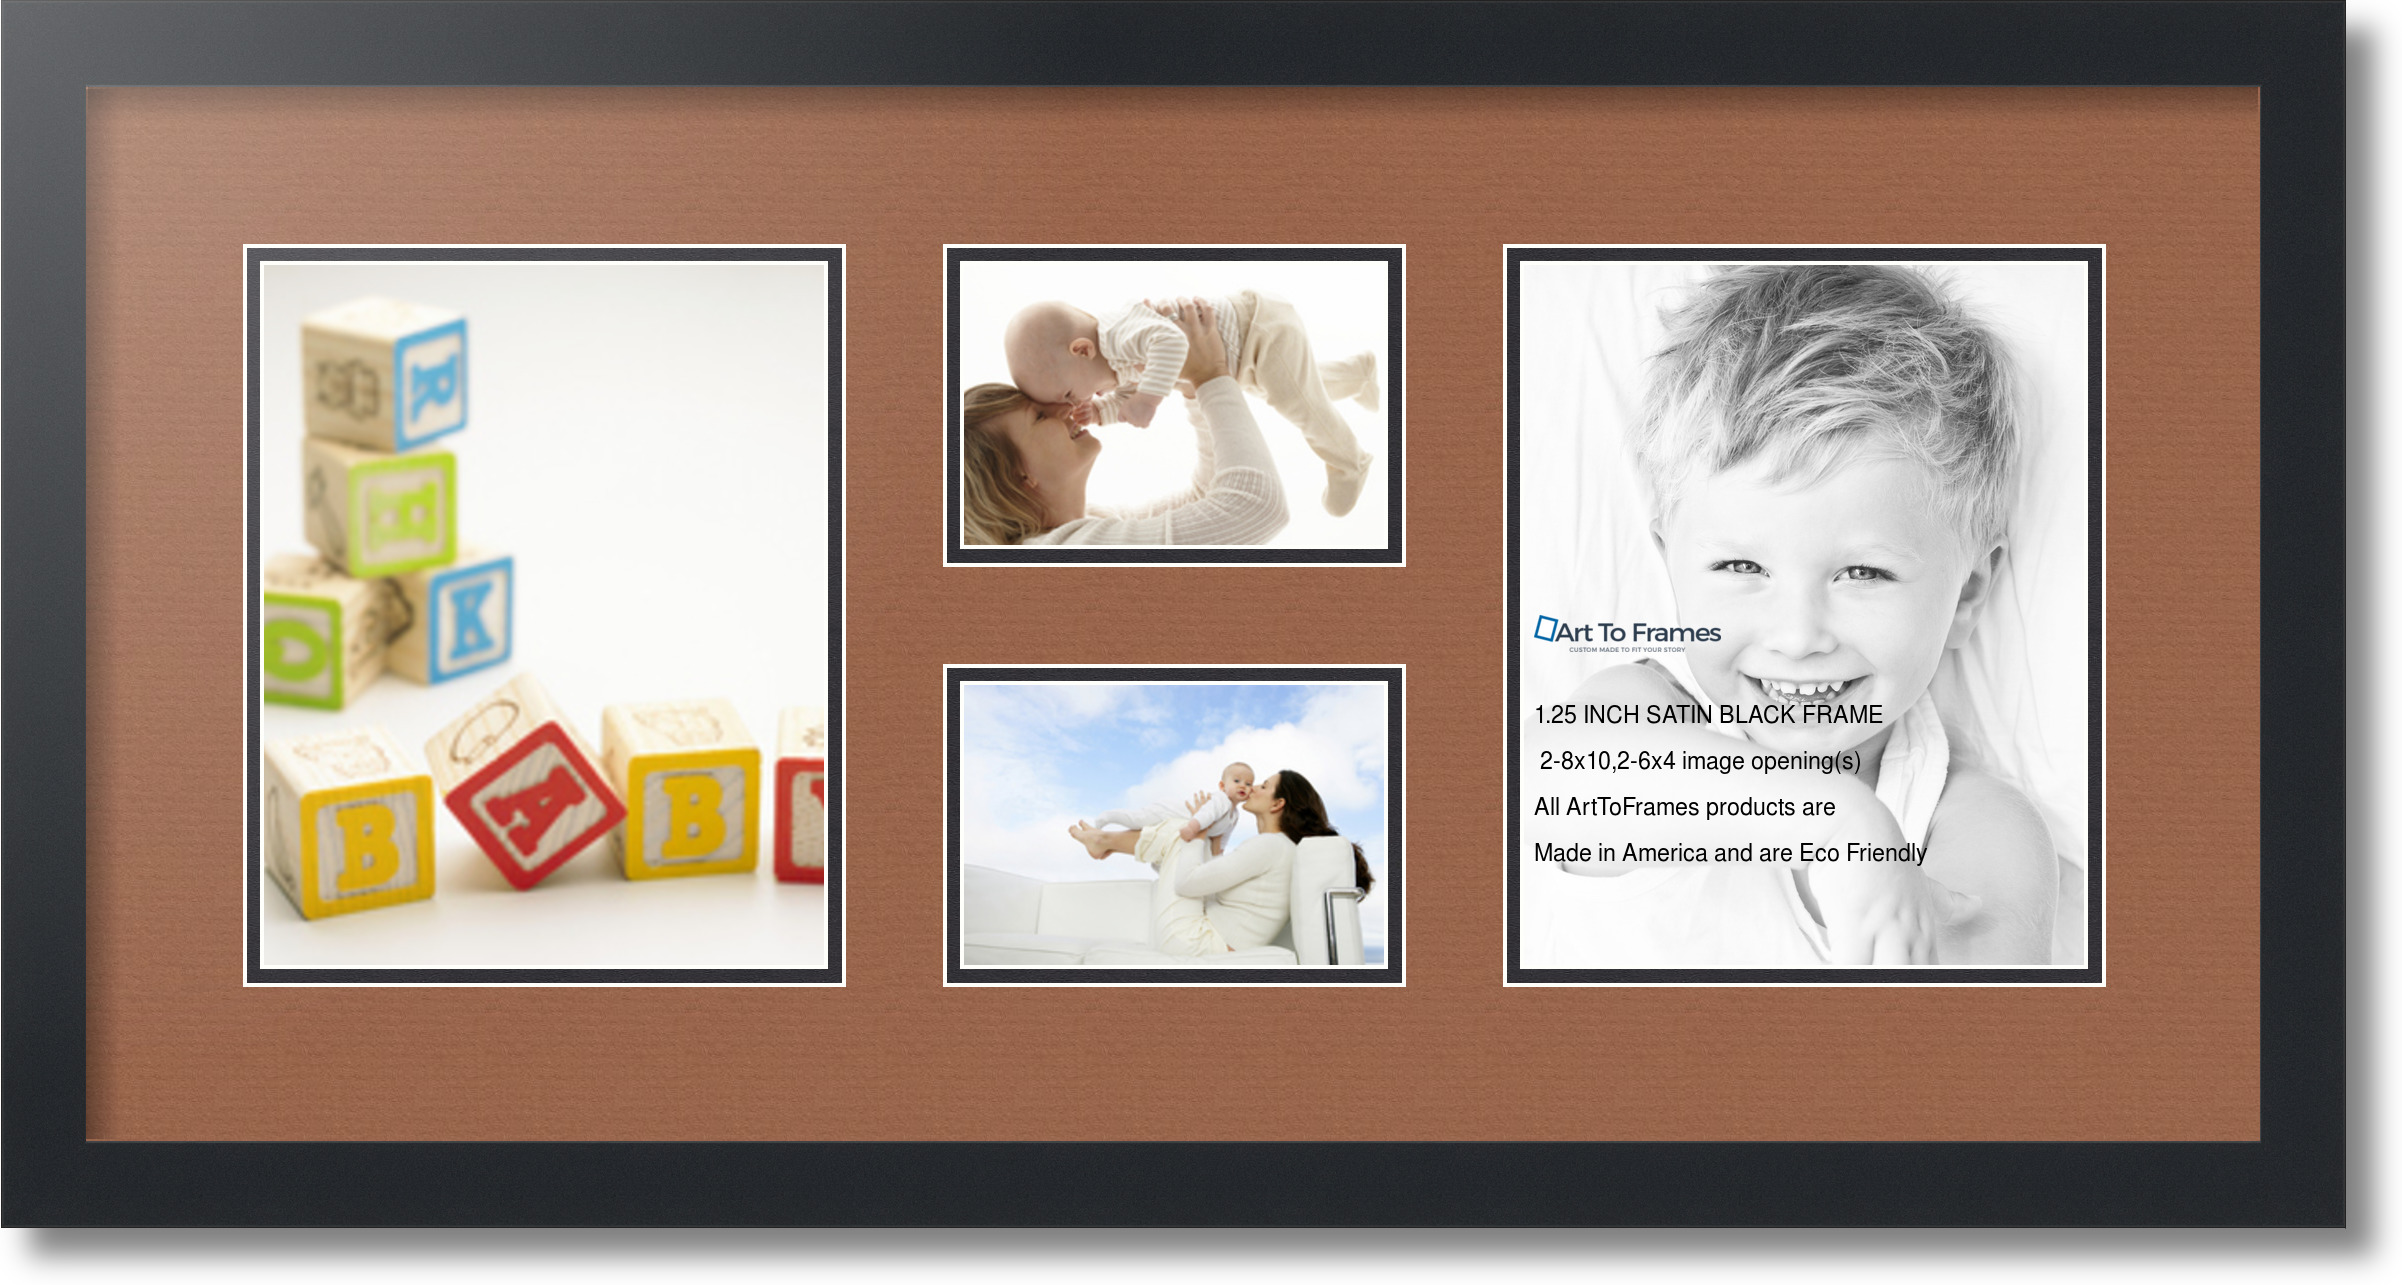 4 By 6 Collage Frames: Satin Black Collage Picture Frame With 2